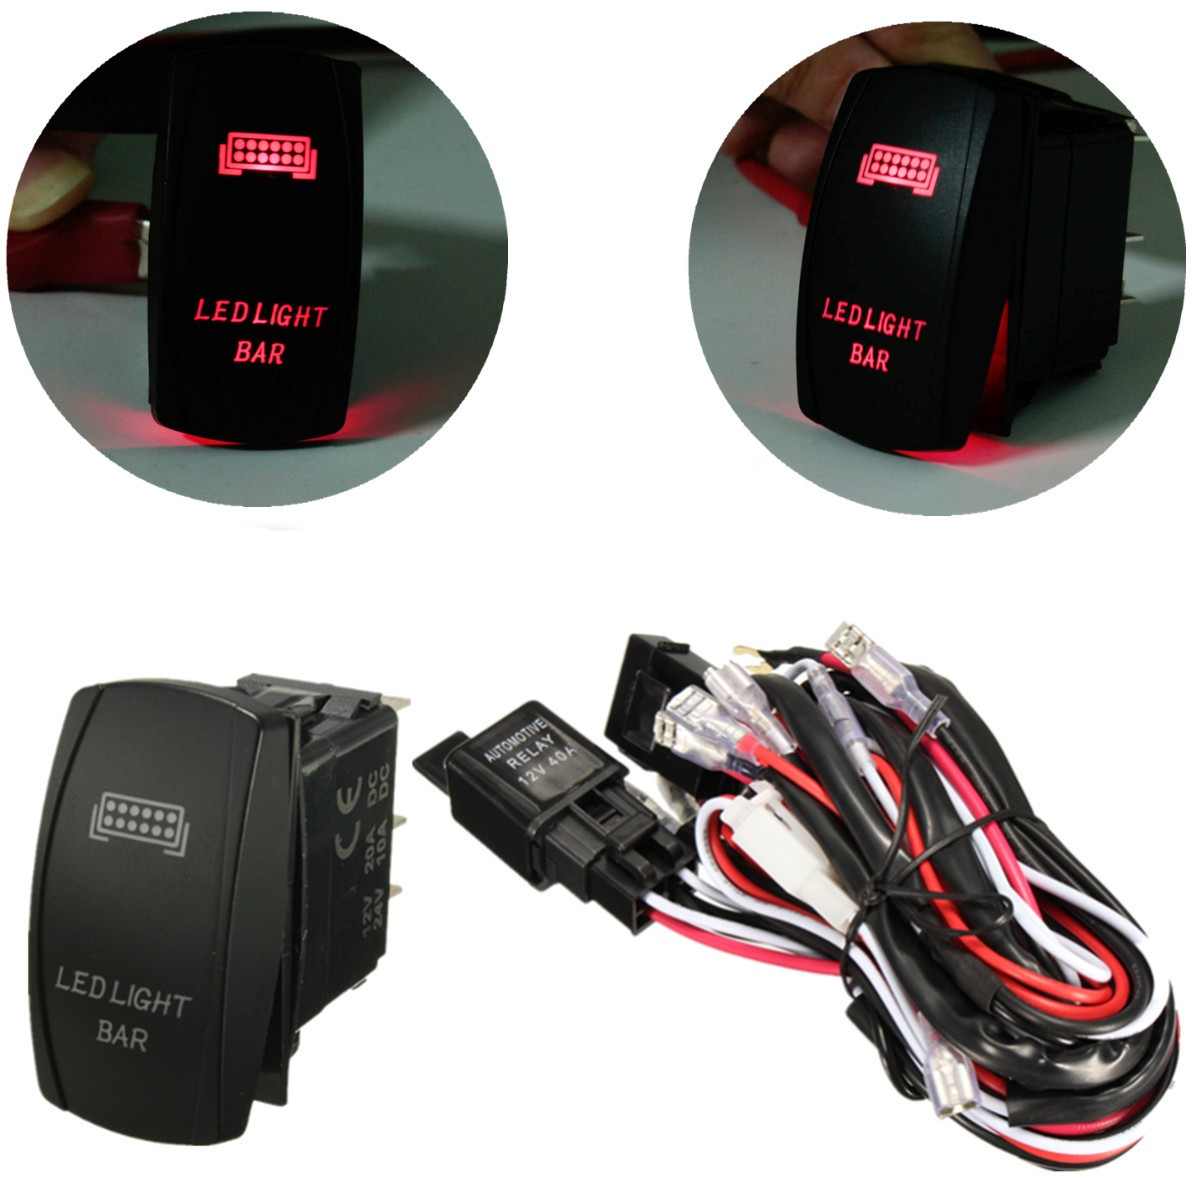 Compare Prices on Light Switch Fuse- Online Shopping/Buy Low Price ...:New 12V LED Light Bar Laser Rocker On/Off Switch Wiring Harness 40A Relay  Fuse,Lighting